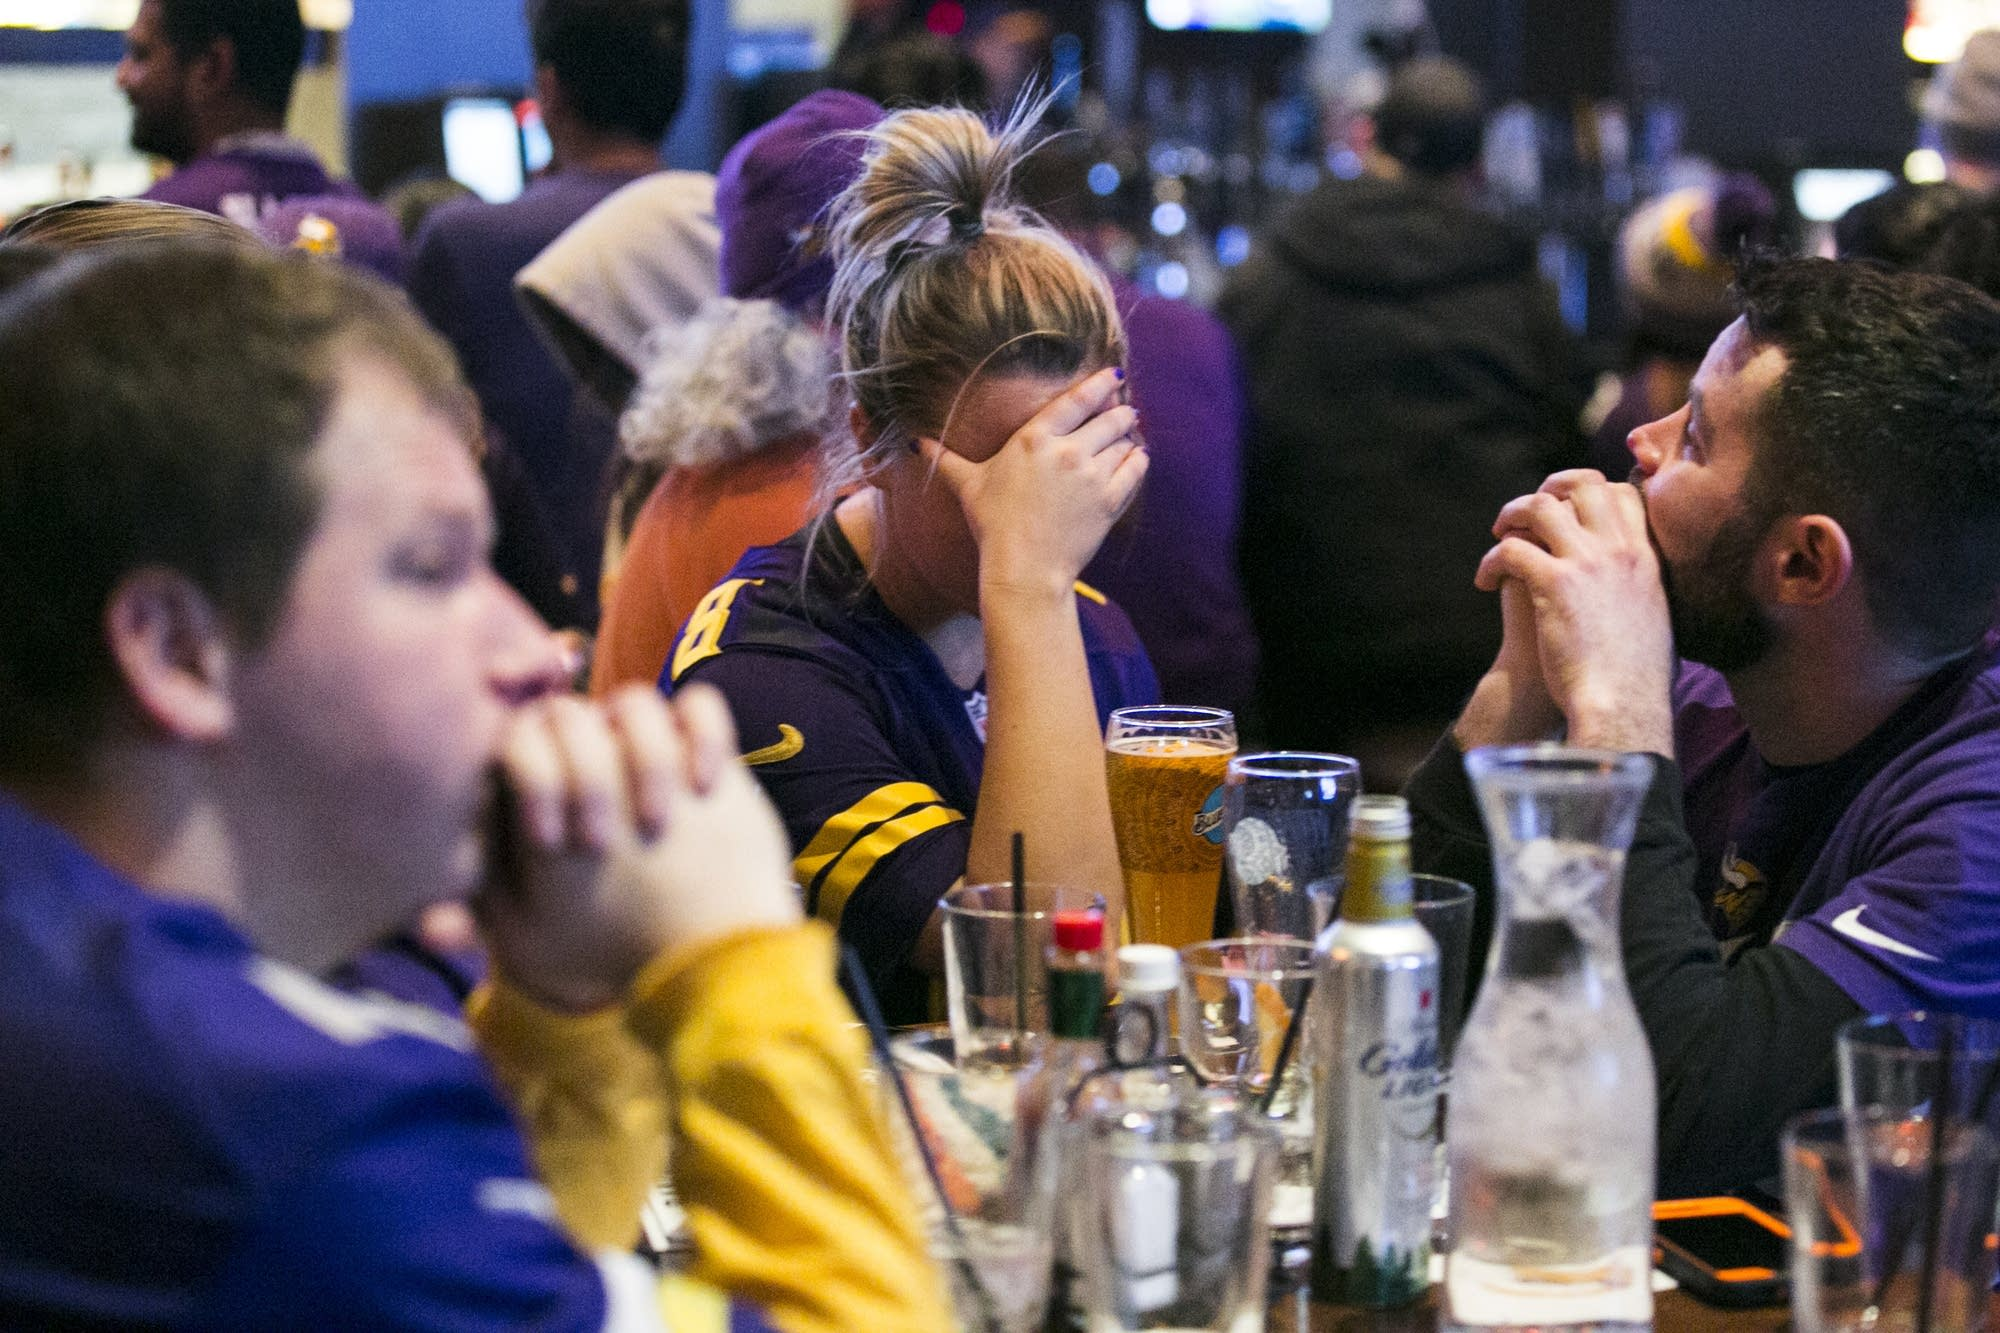 Fans react to a play in the third quarter.